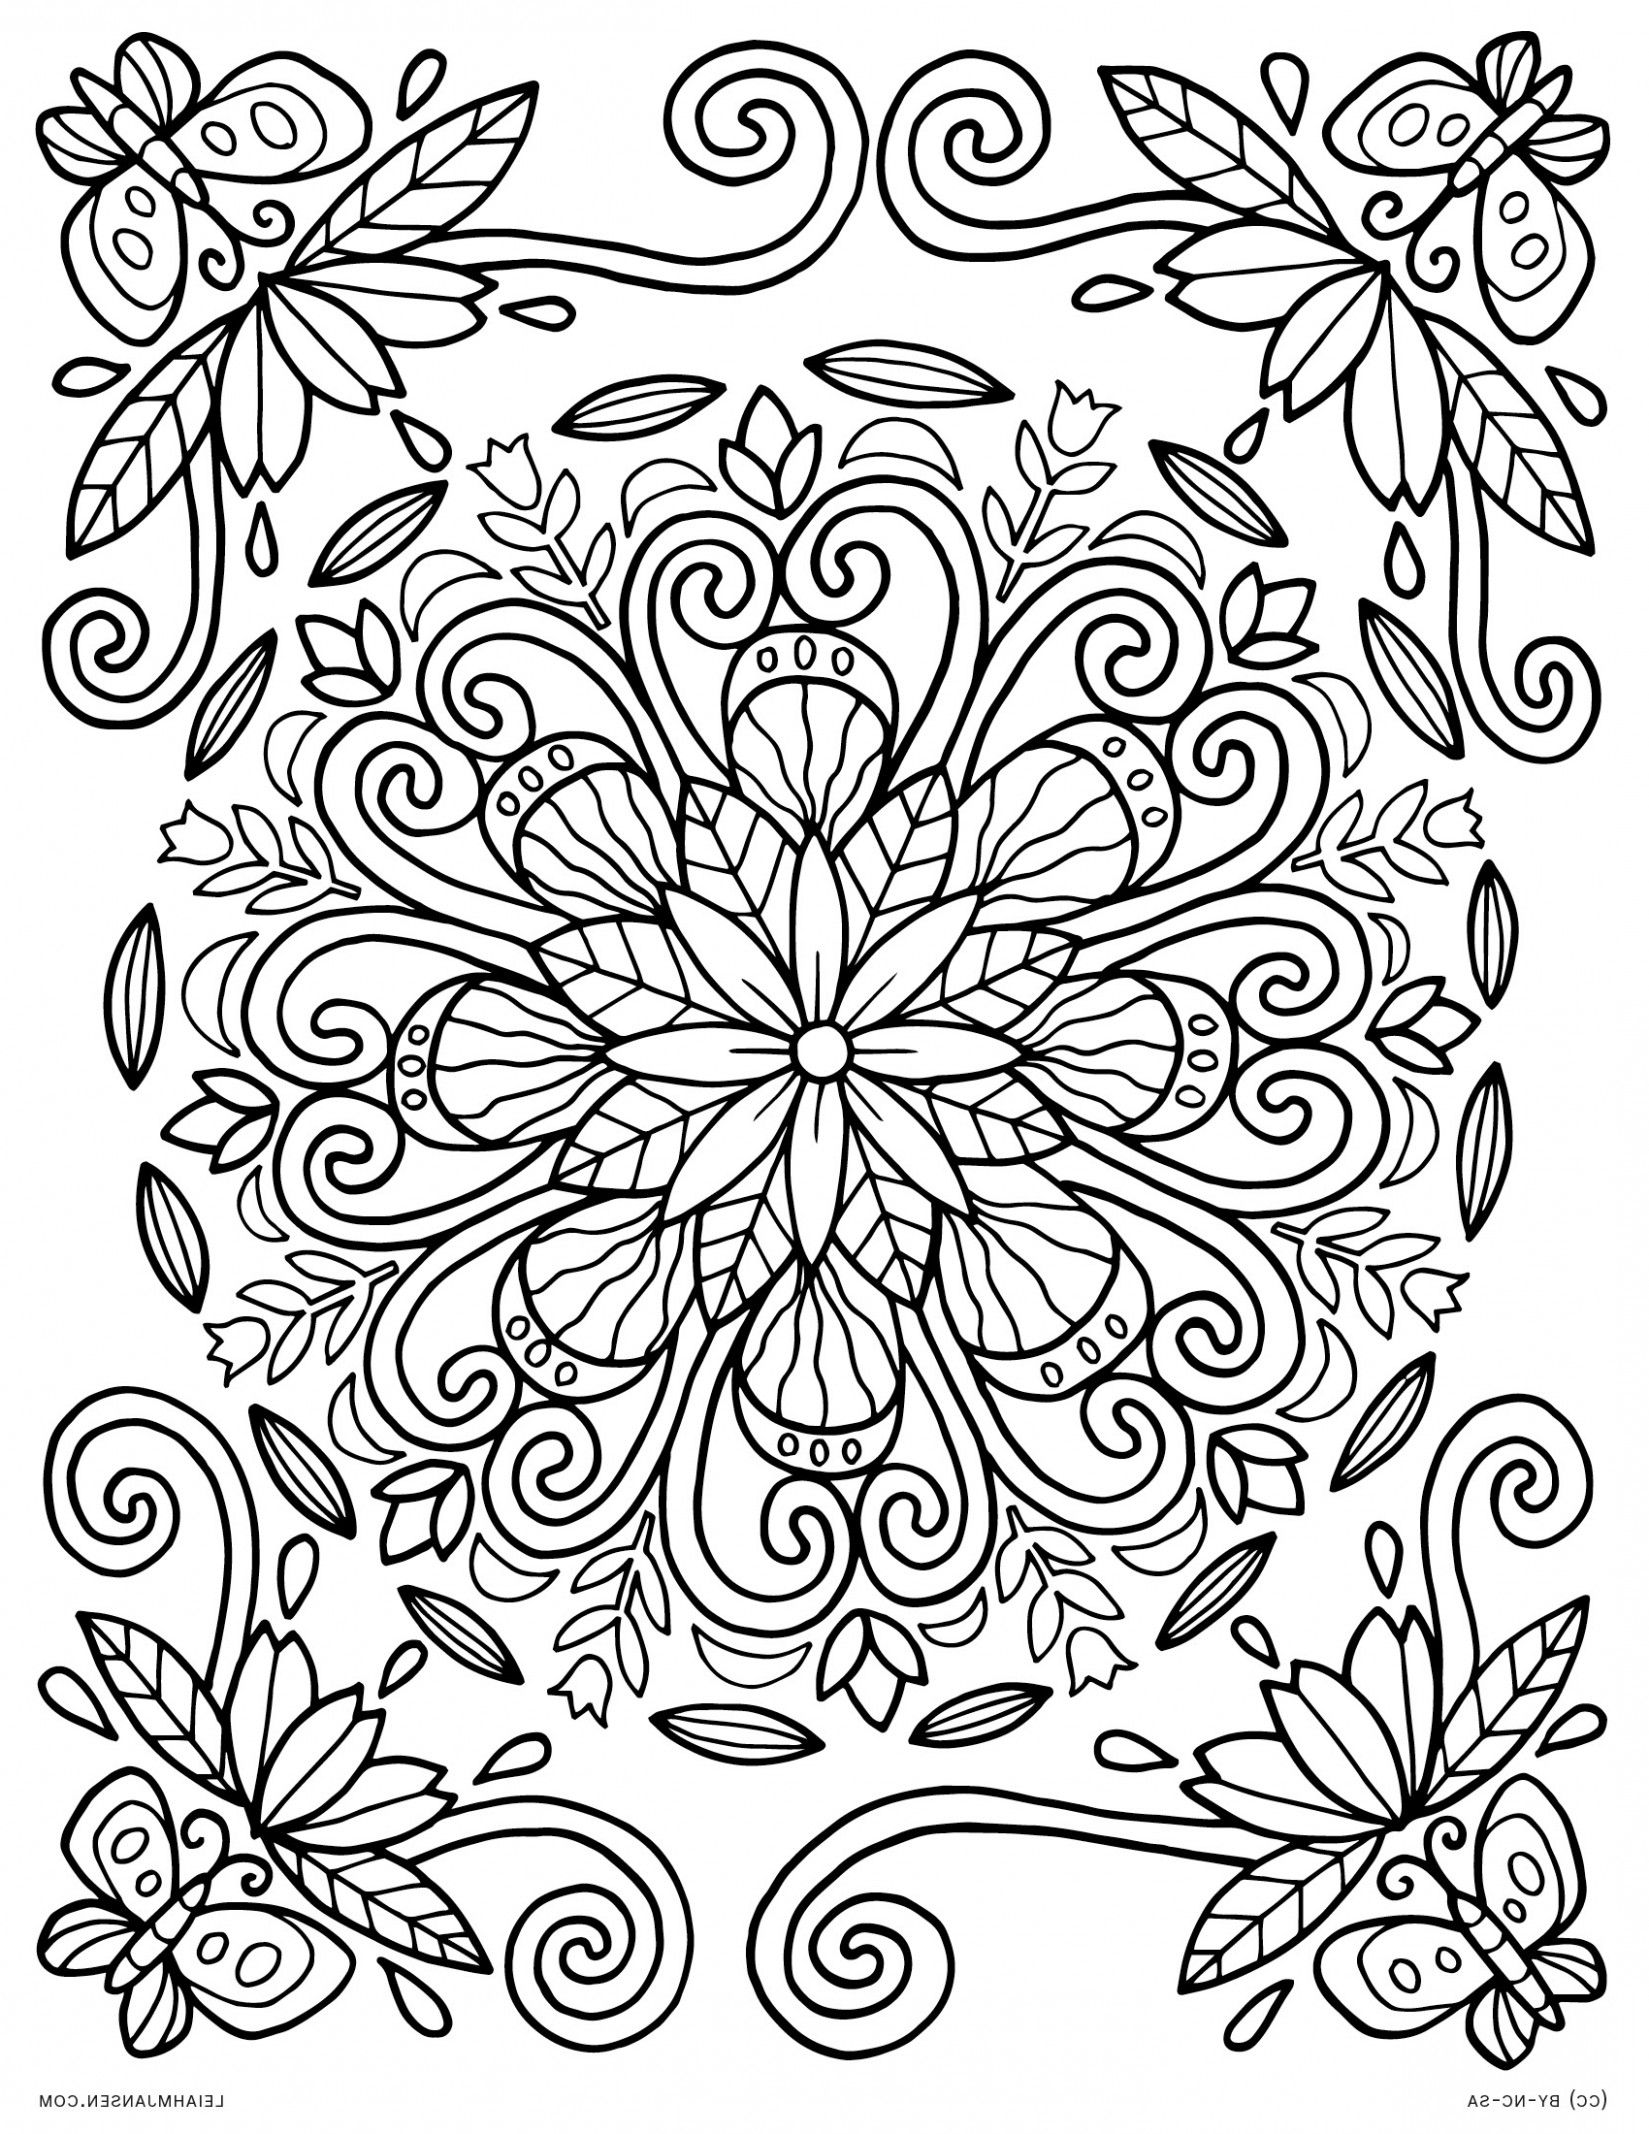 The Shocking Revelation Of Spring Coloring Mandala Coloring Abstract Coloring Pages Mandala Coloring Books Coloring Pages Nature